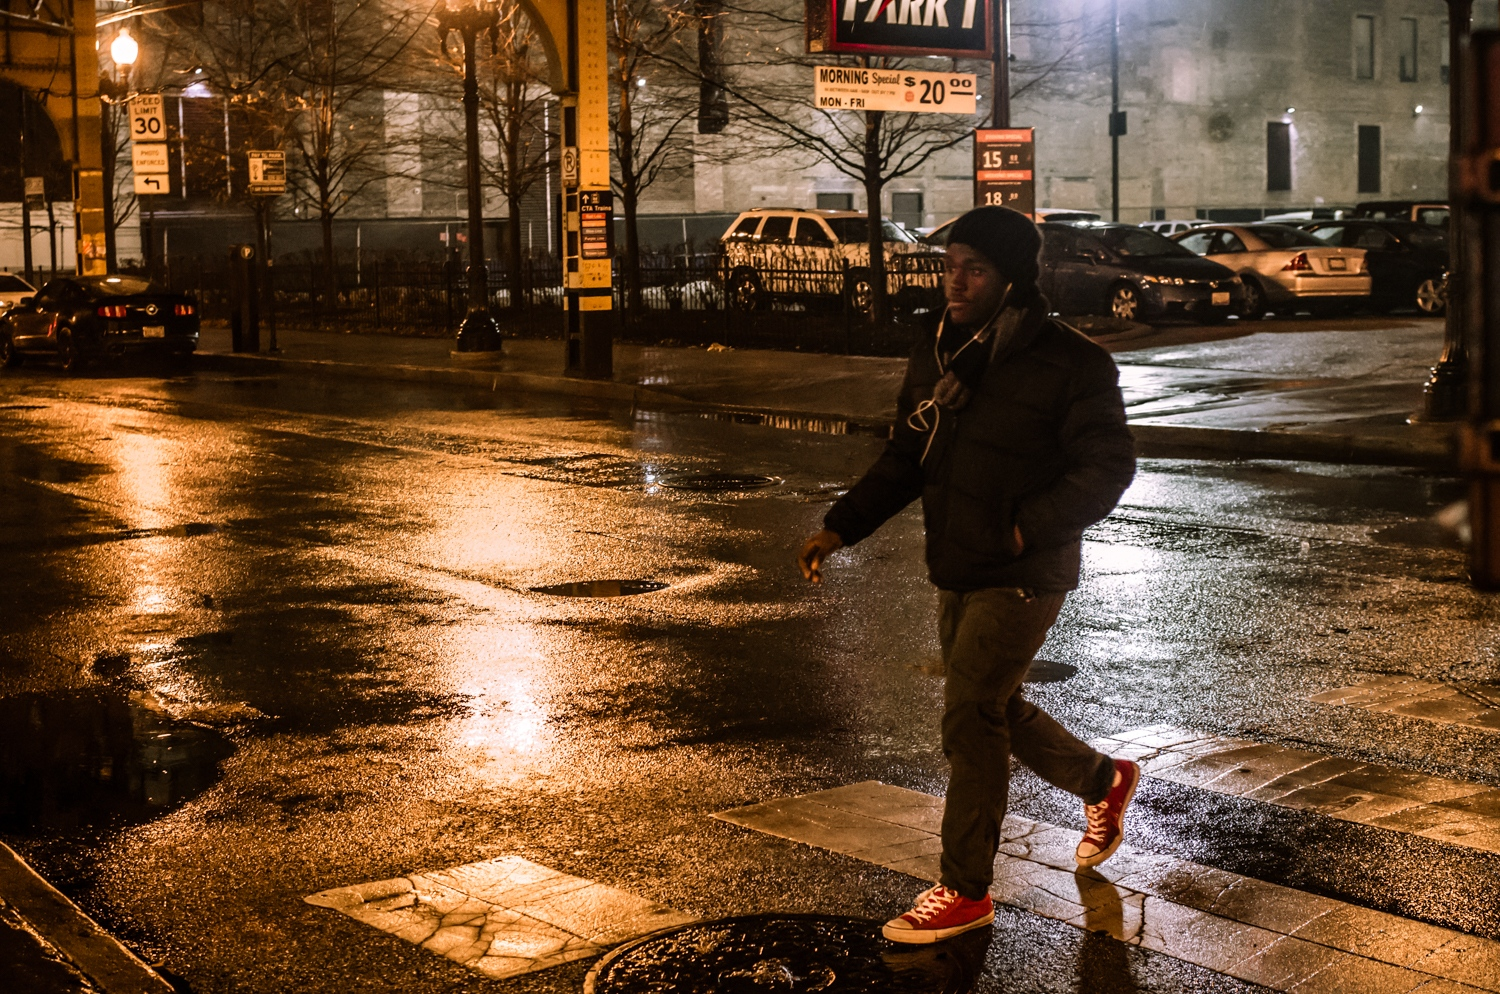 Art and Documentary Photography - Loading -The_Street_as_Graphic_Novel__Man_in_crosswalk__Wabash_Ave.jpg